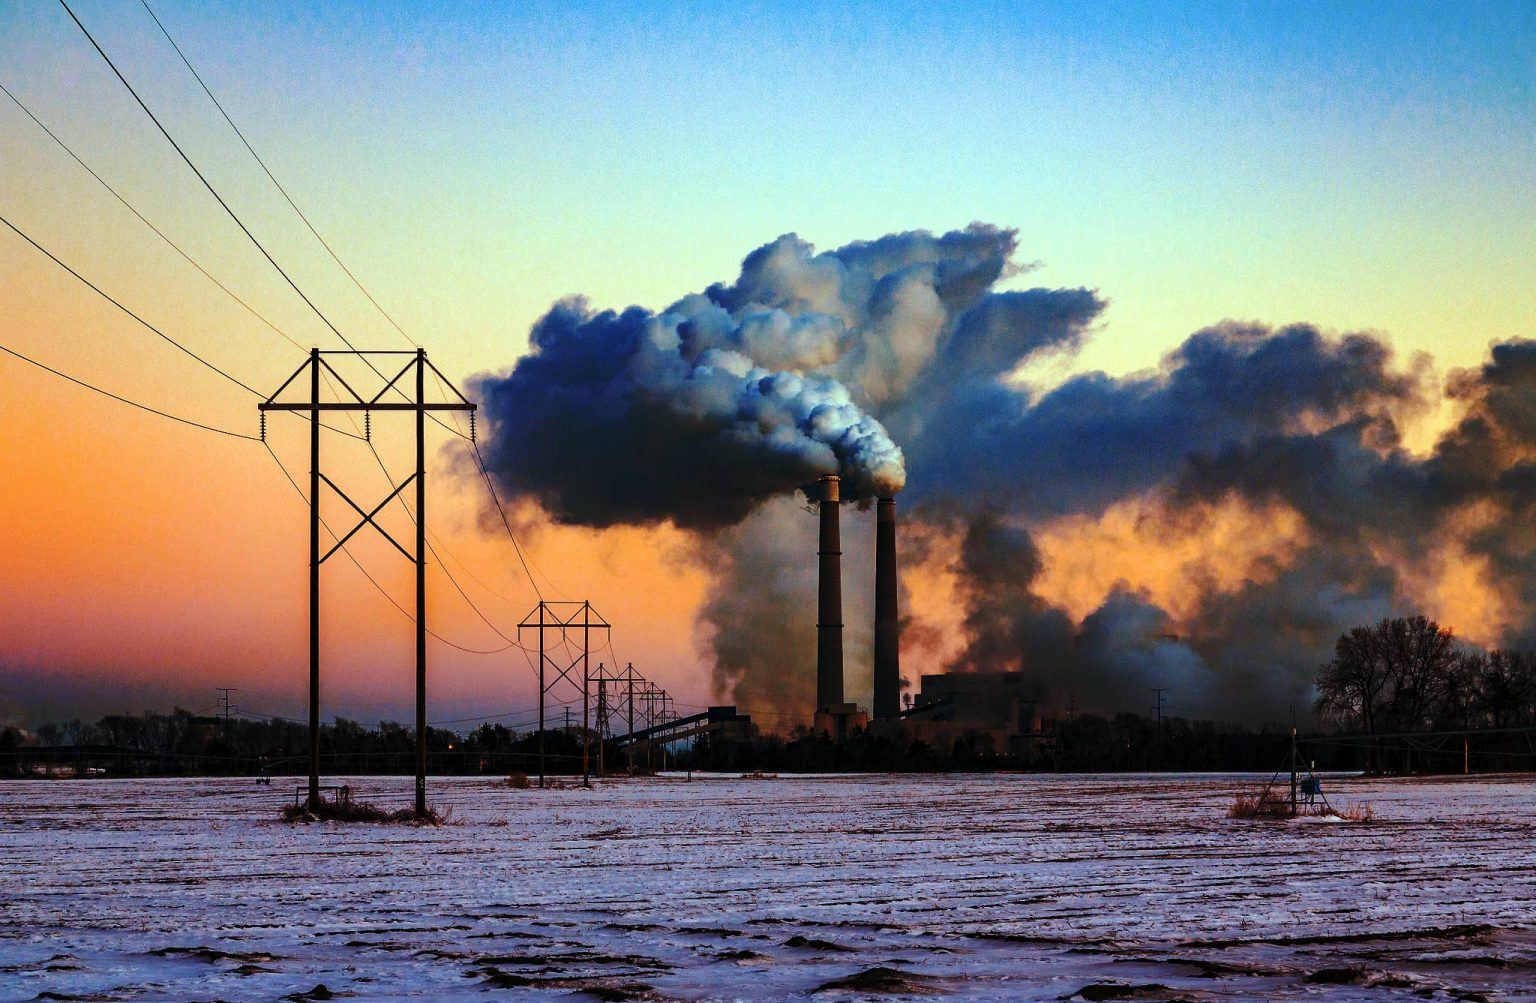 Sherco Generating Station in Becker, Minnesota, is a coal-fired power plant that consumes 20,000 to 30,000 tons of coal every day.